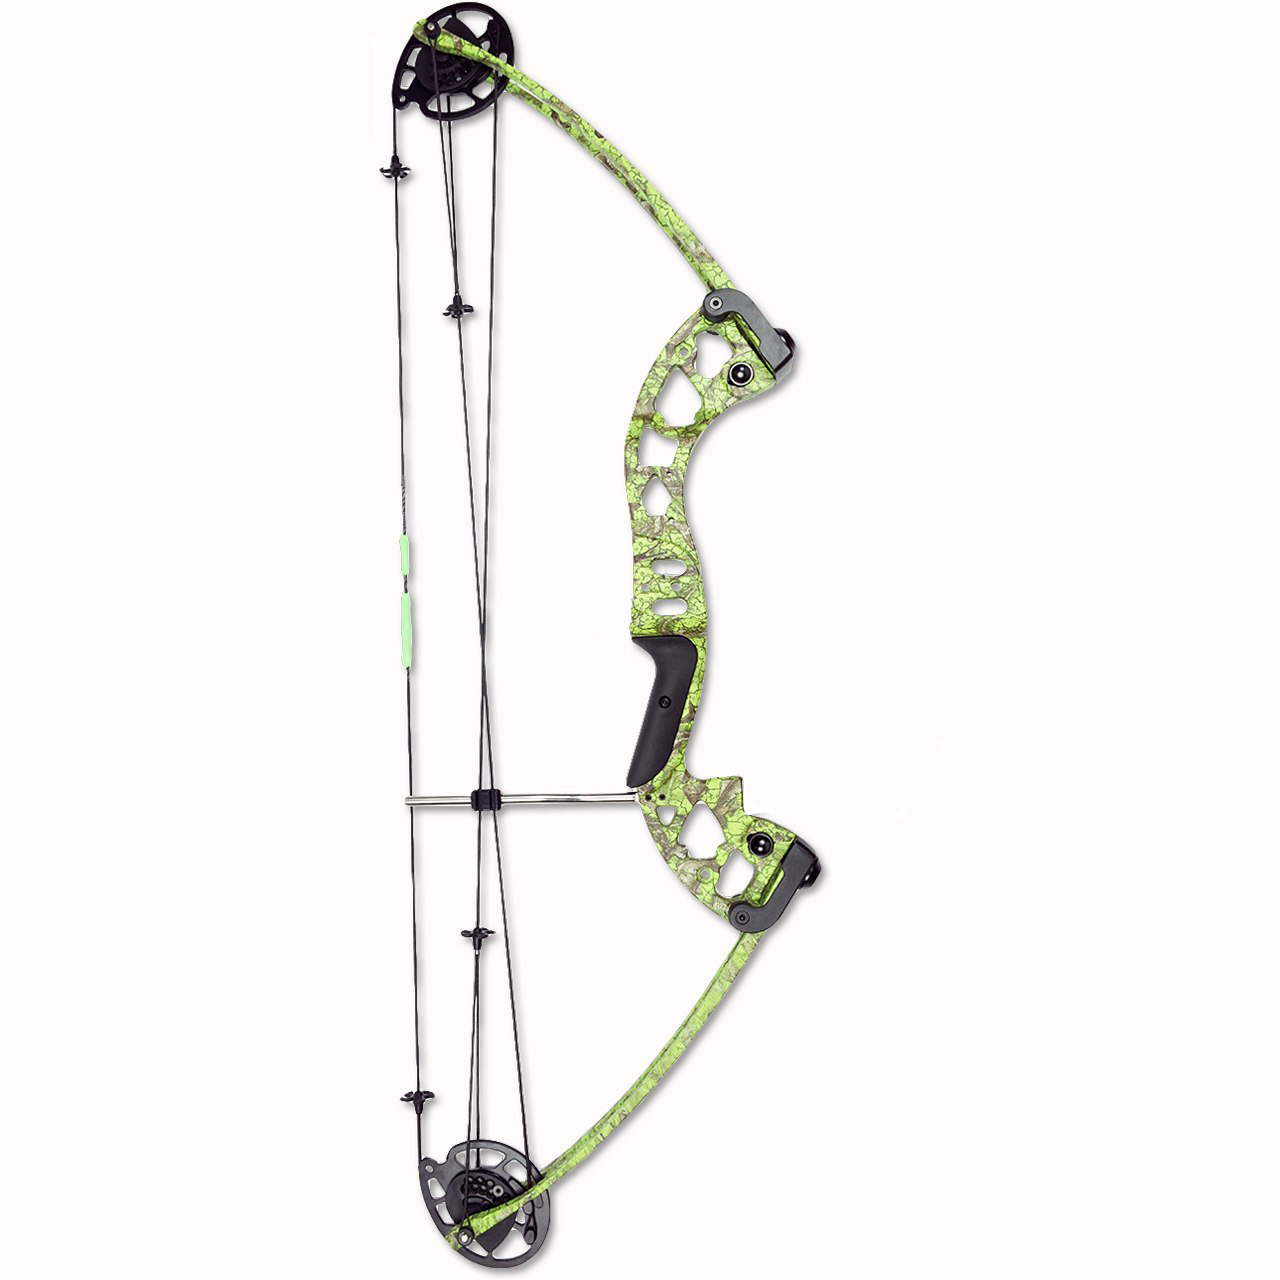 Muzzy Vice Bow Fishing Bow